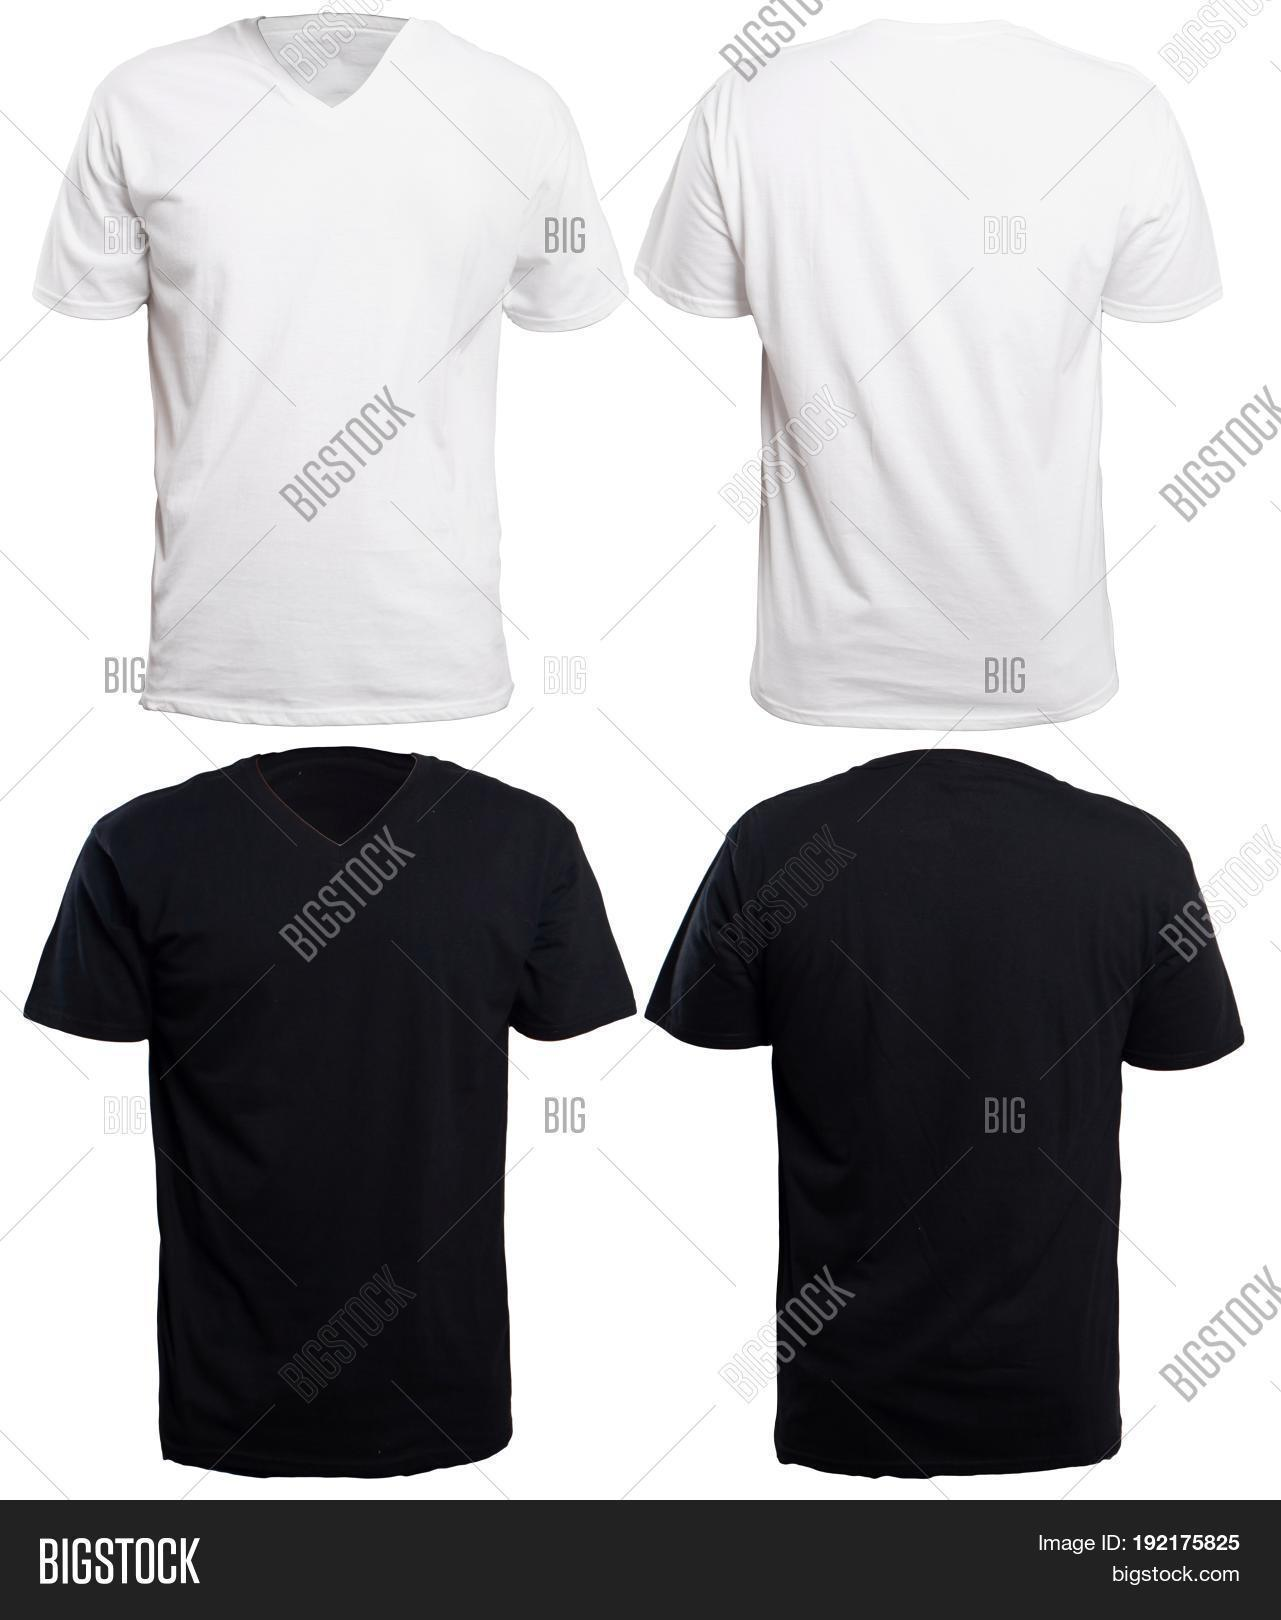 Blank V-neck Shirt Image & Photo (Free Trial) | Bigstock